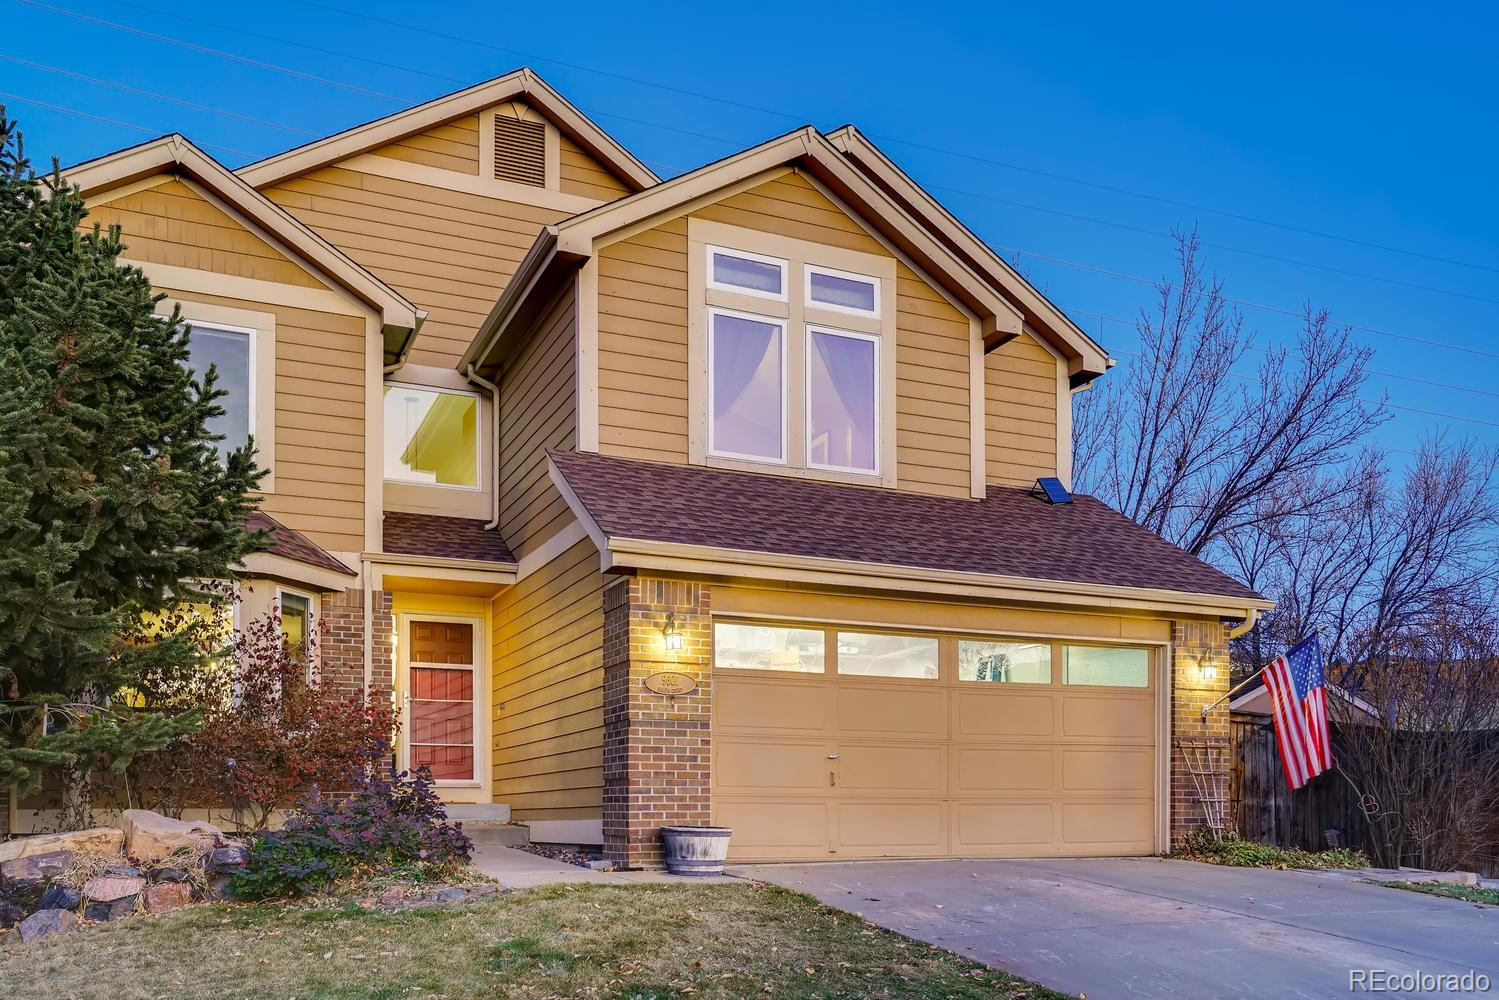 9601 Salem Court, Highlands Ranch, CO 80130 - Highlands Ranch, CO real estate listing